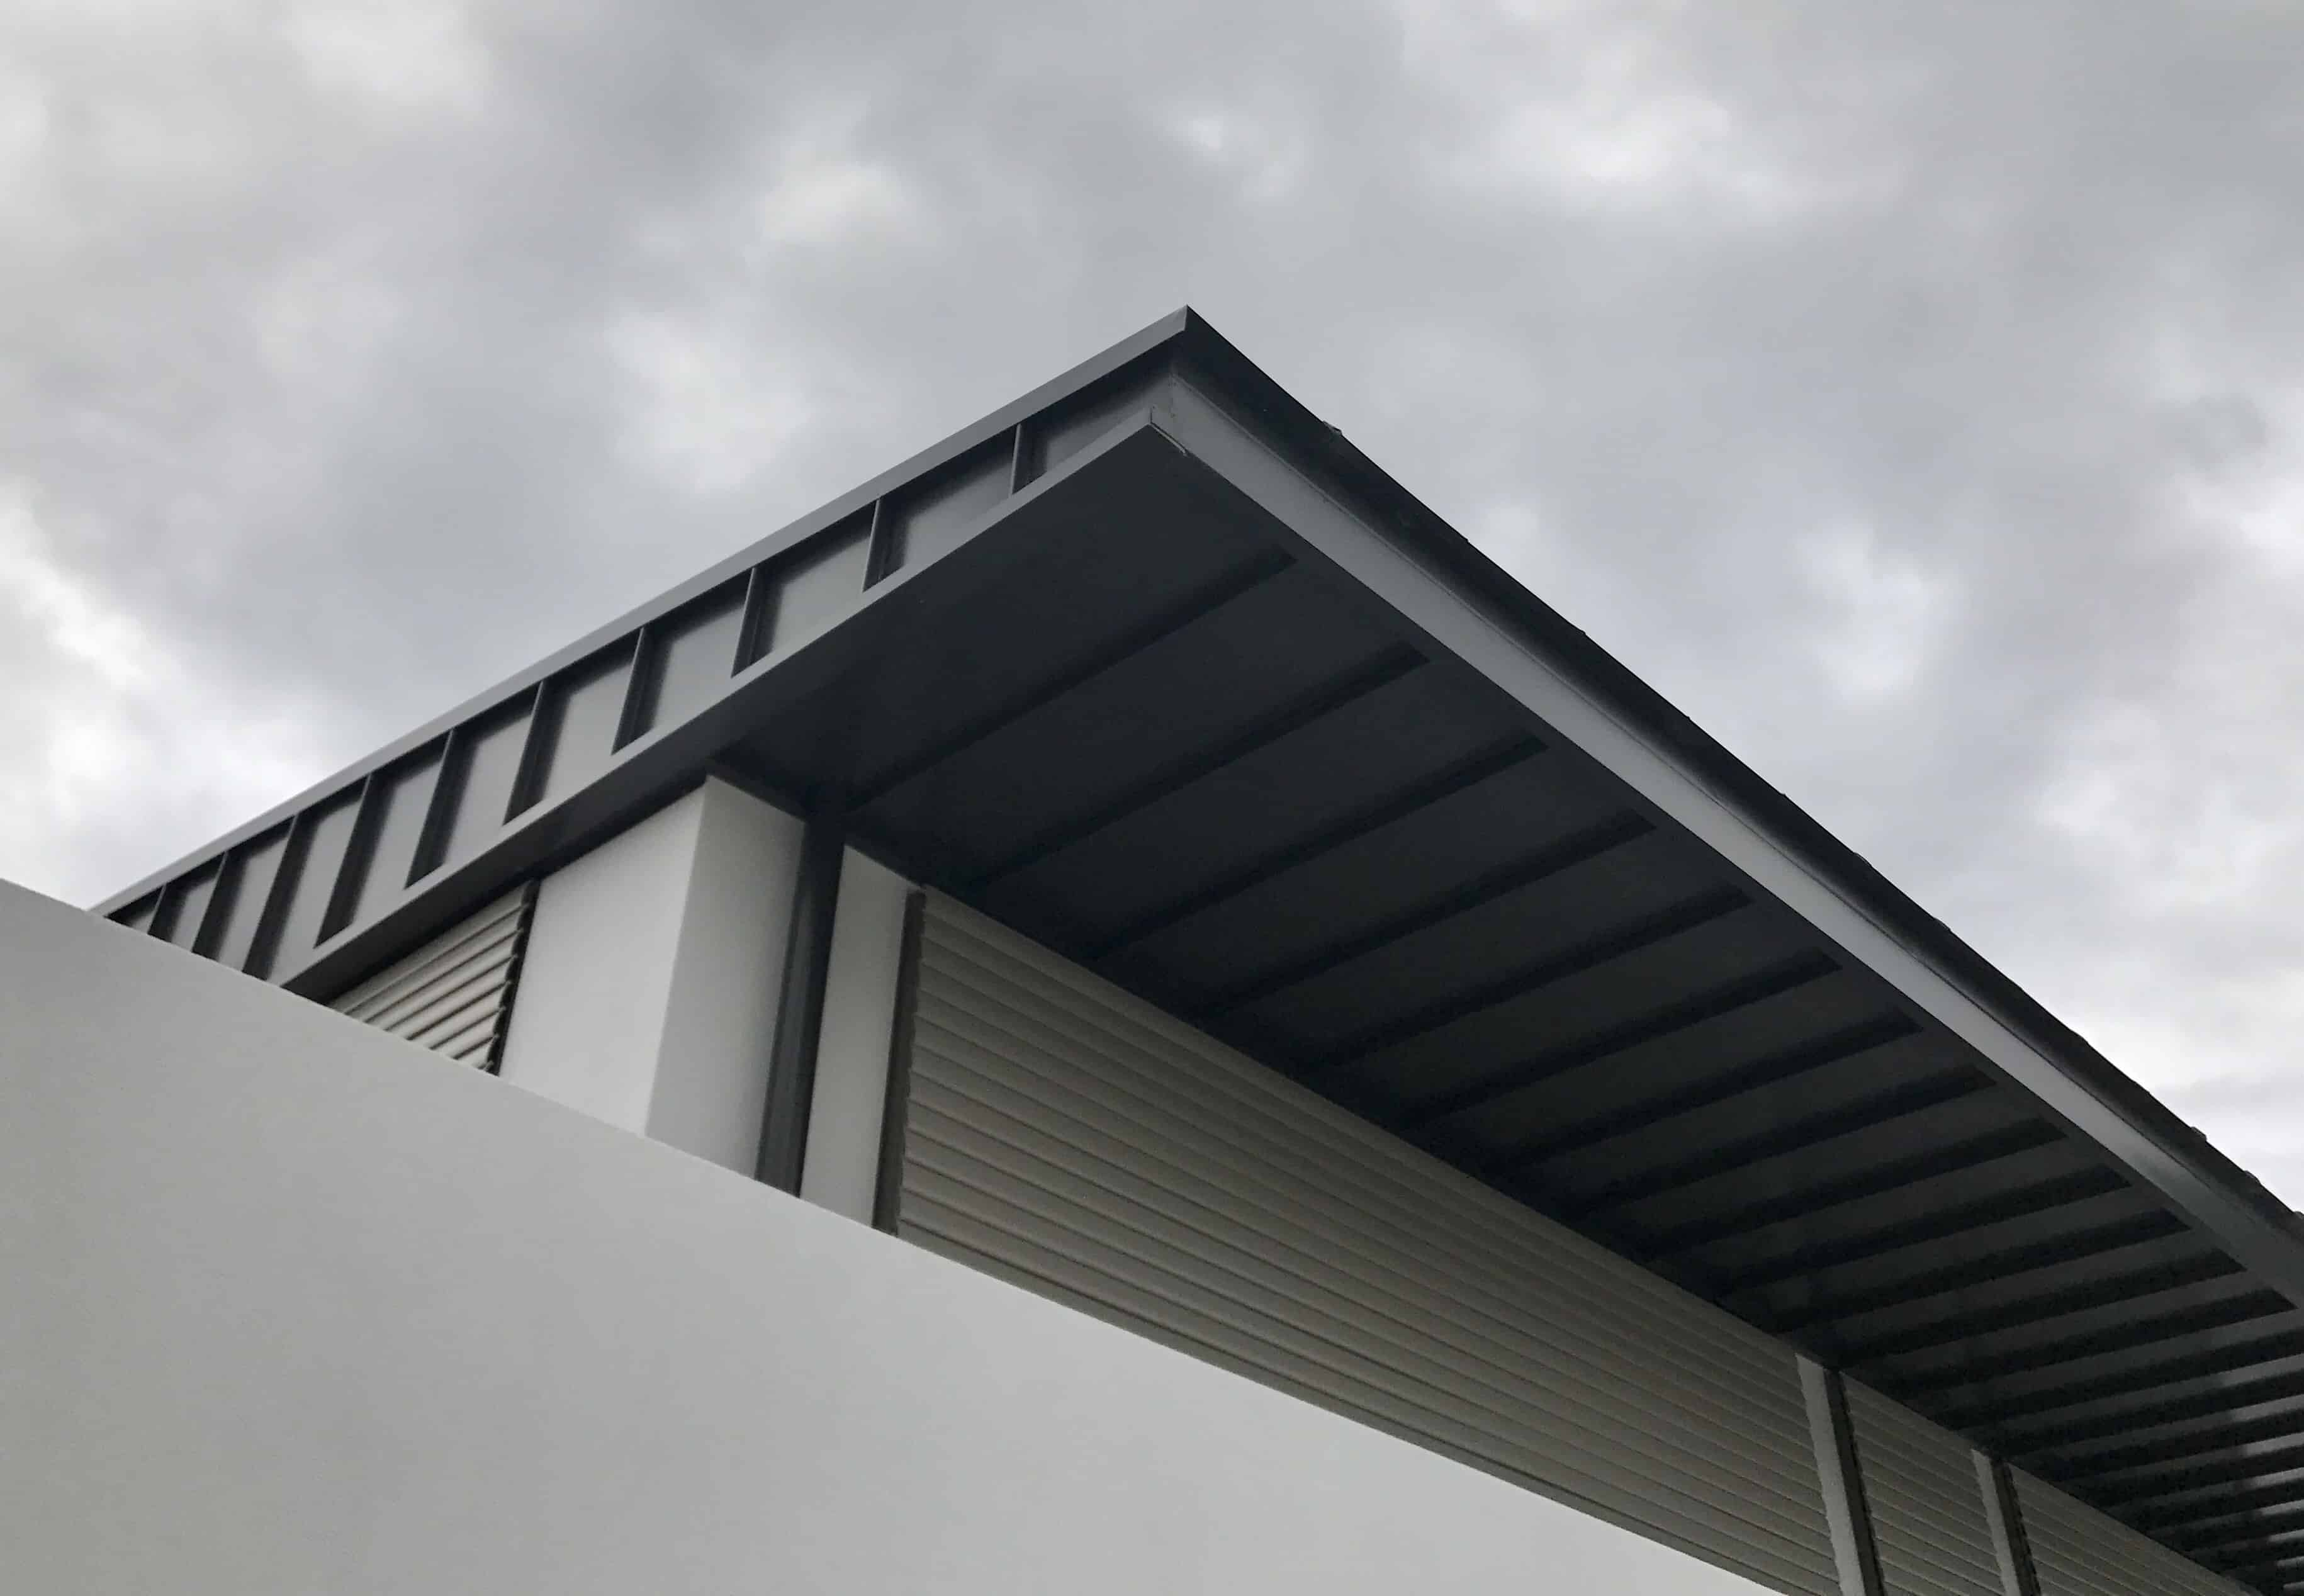 The Sharply Defined 45mm High Ribs Gives These Panels A Special Character